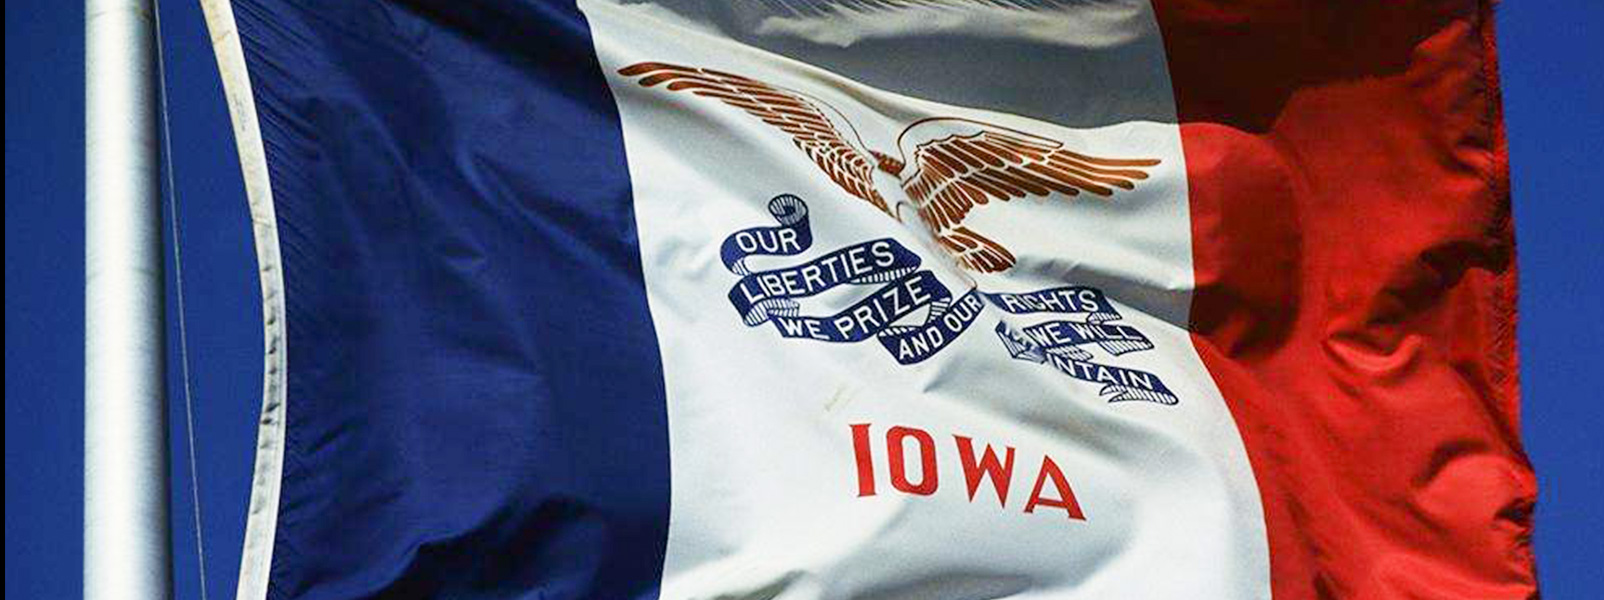 IOWA: SUPPRESSOR LEGISLATION NEEDS SUPPORT